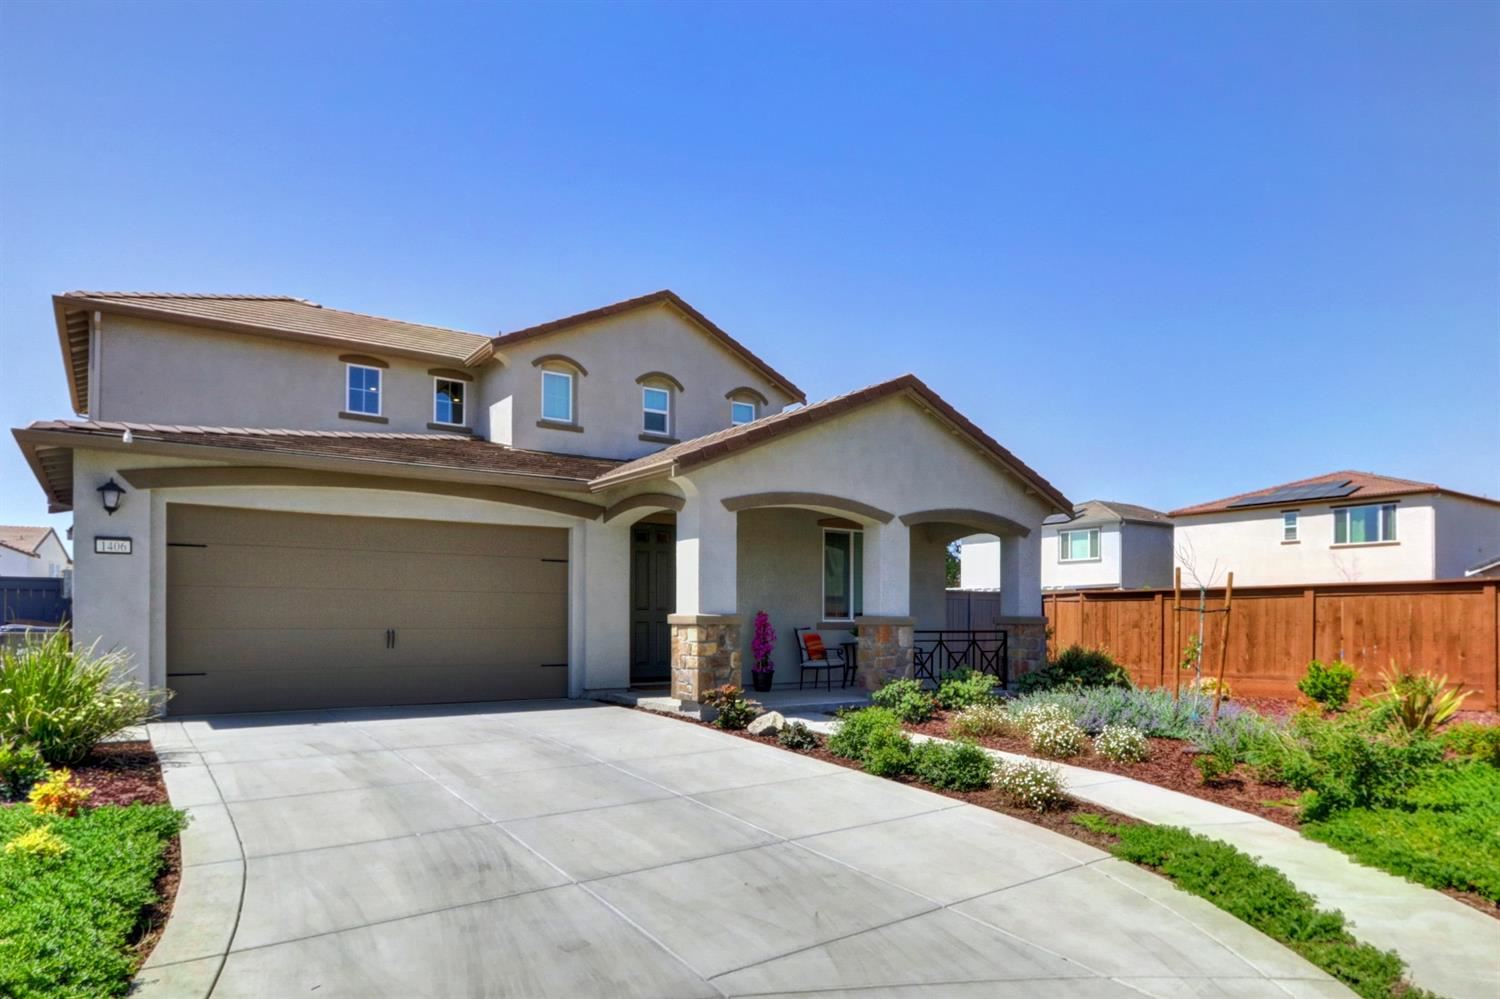 Photo of 1406 Roth Place, Woodland, CA 95776 (MLS # 221030802)